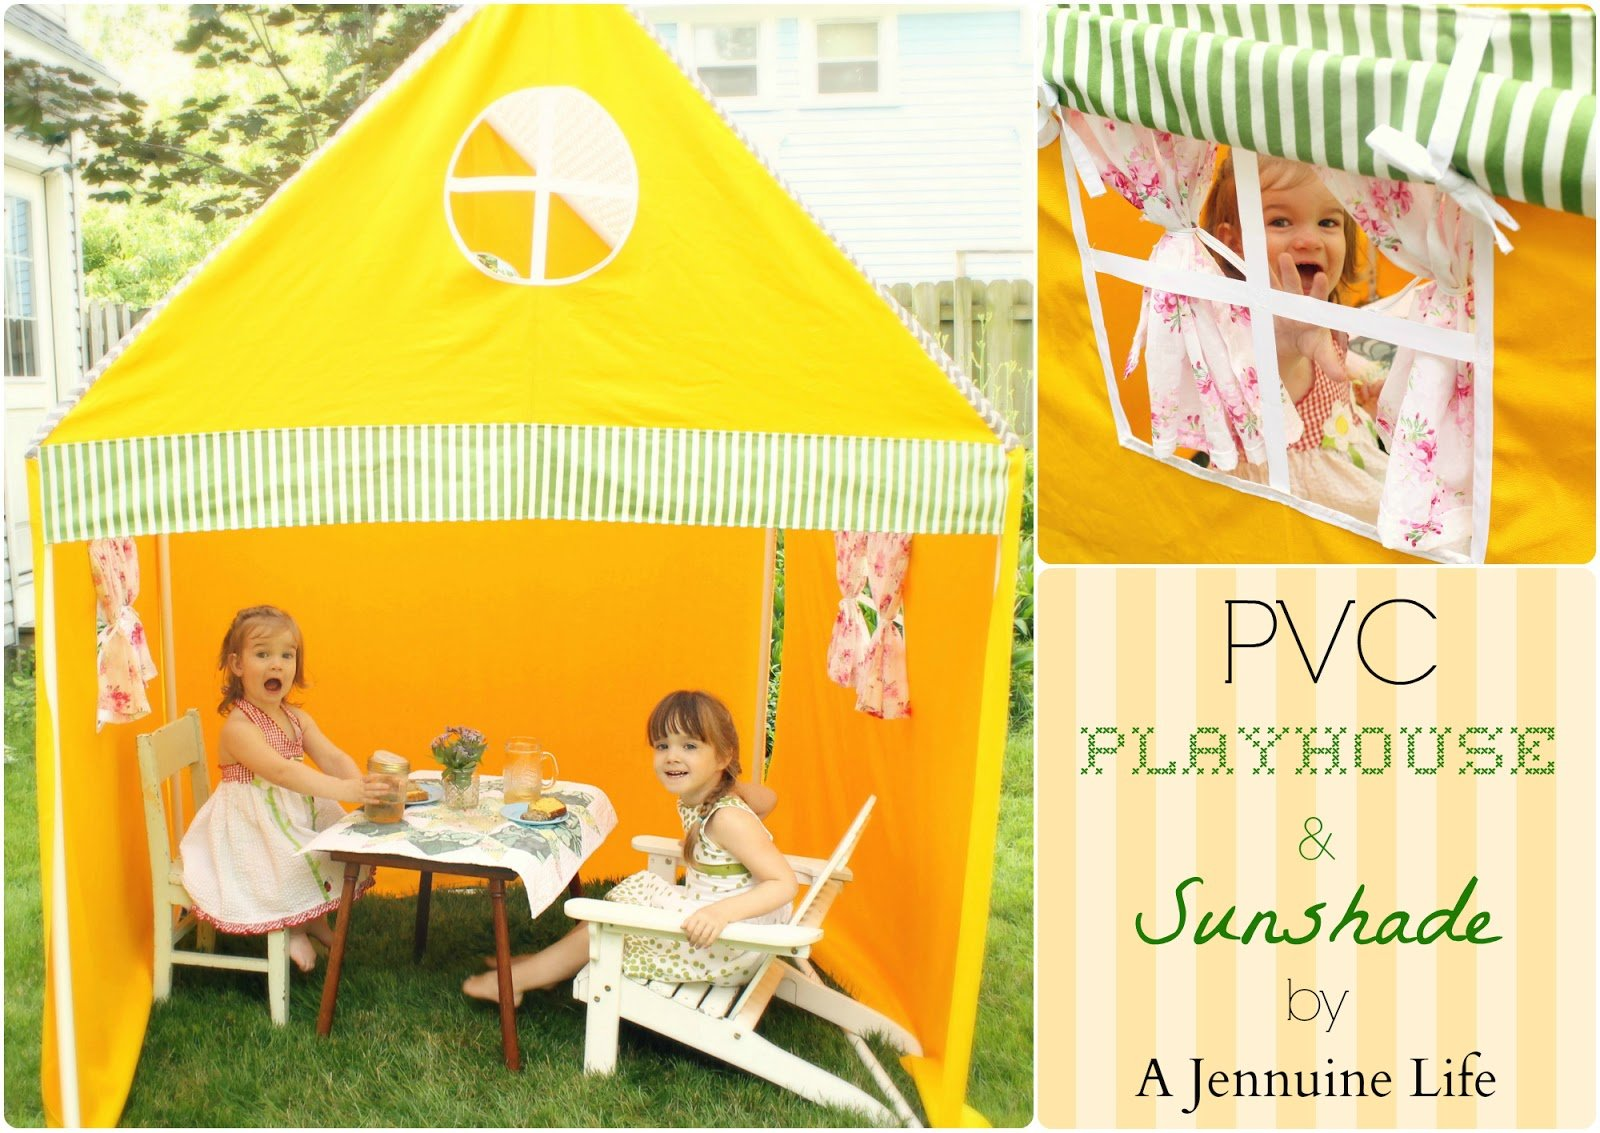 Color Furniture Grade Pvc Fittings Now Available also 18 Diy Quail Hutch Ideas And Designs further Diy Kids Outdoor Playset Projects in addition Looking For Pvc Plans For Large Chicken Coop further Awesome Outdoor Cats Walkway And Home 2014 Interior Design. on pvc pipe playhouse plans